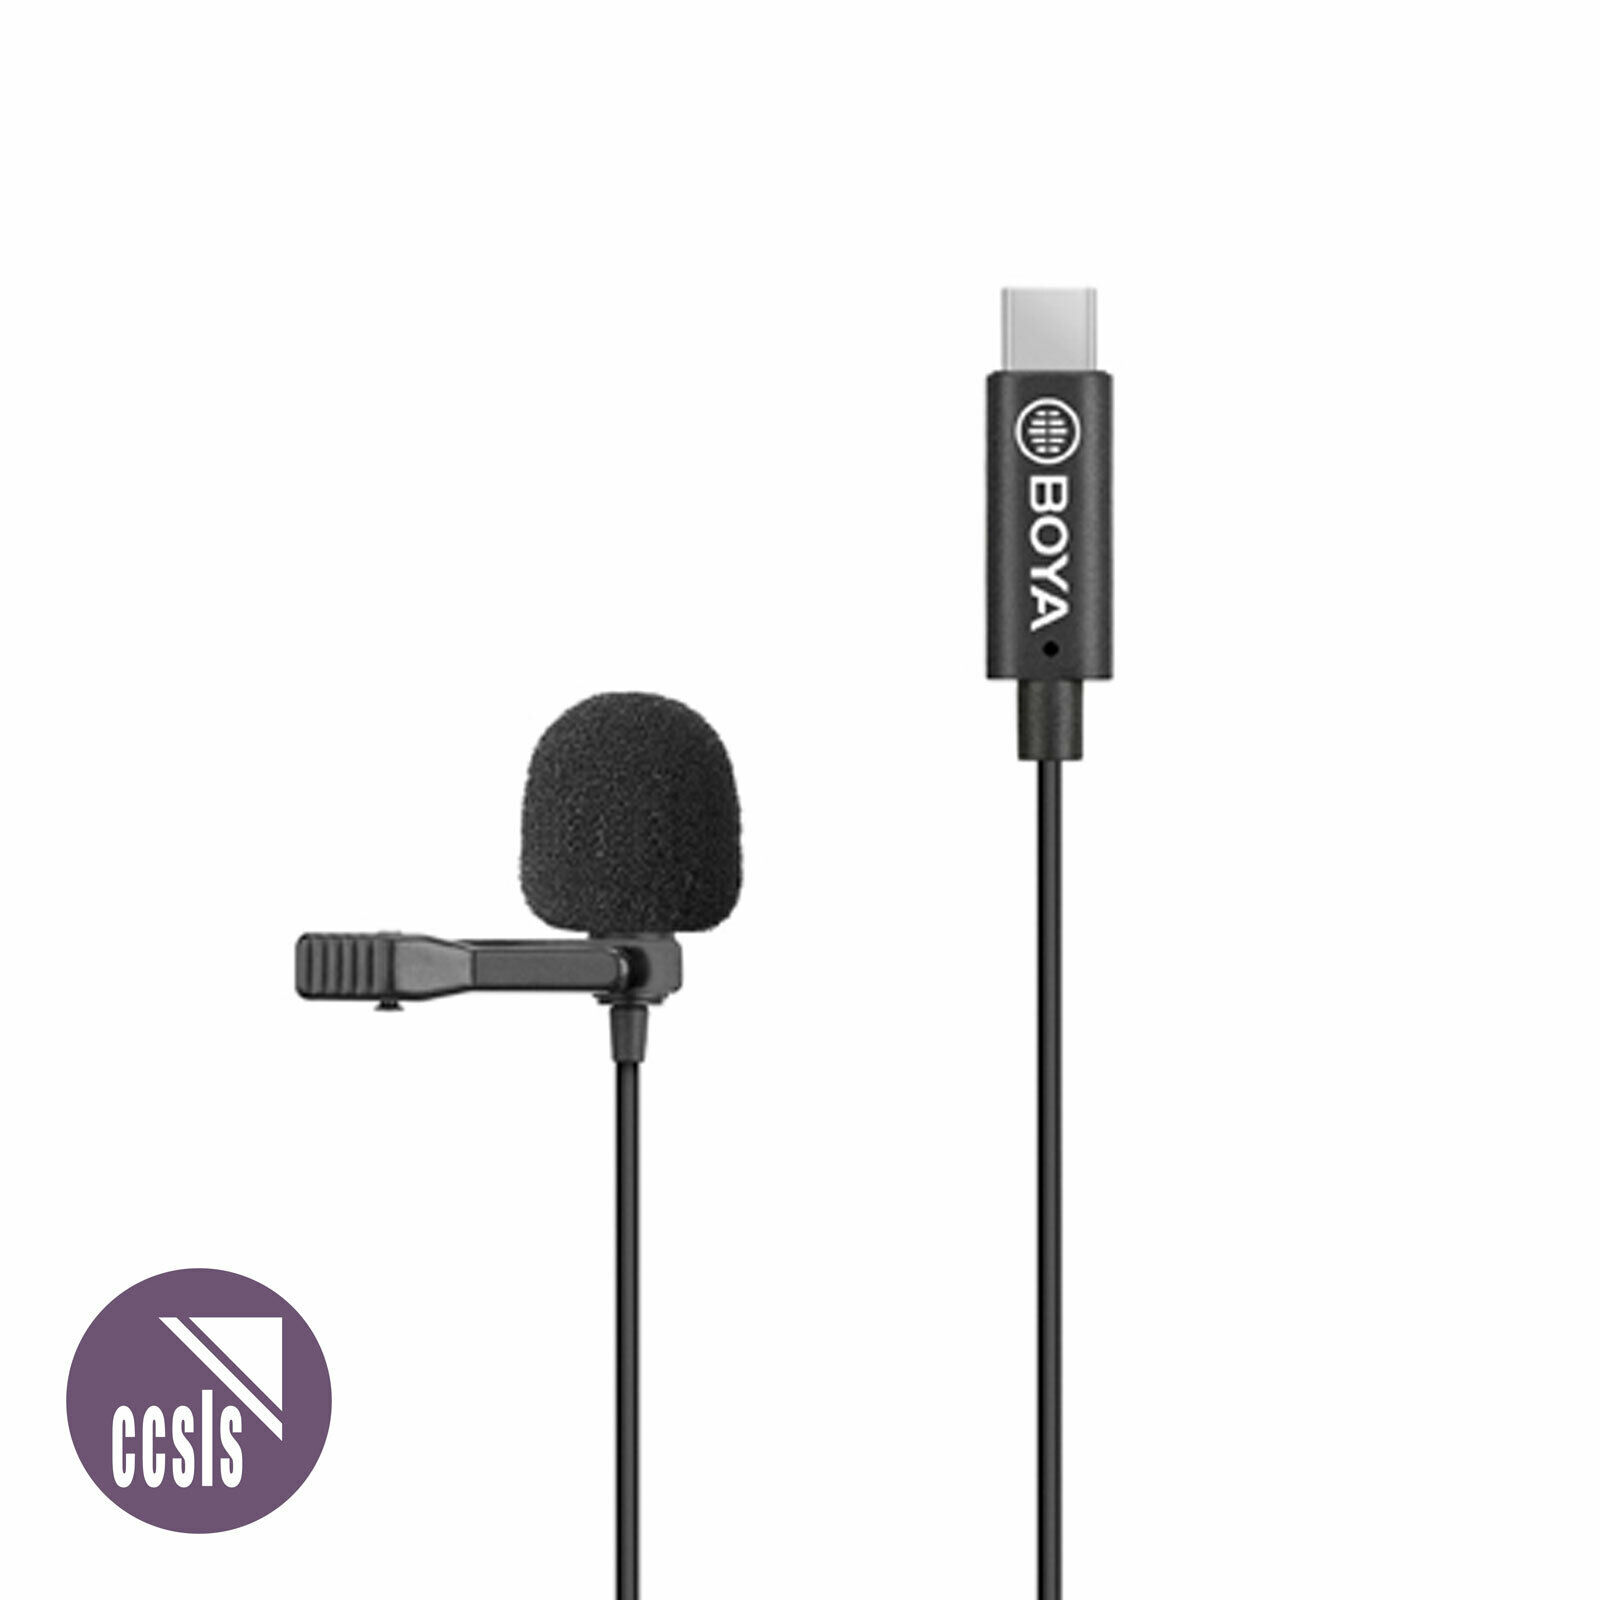 Boya BY-M3 Lav Microphone with USB-C Connector for Android Devices